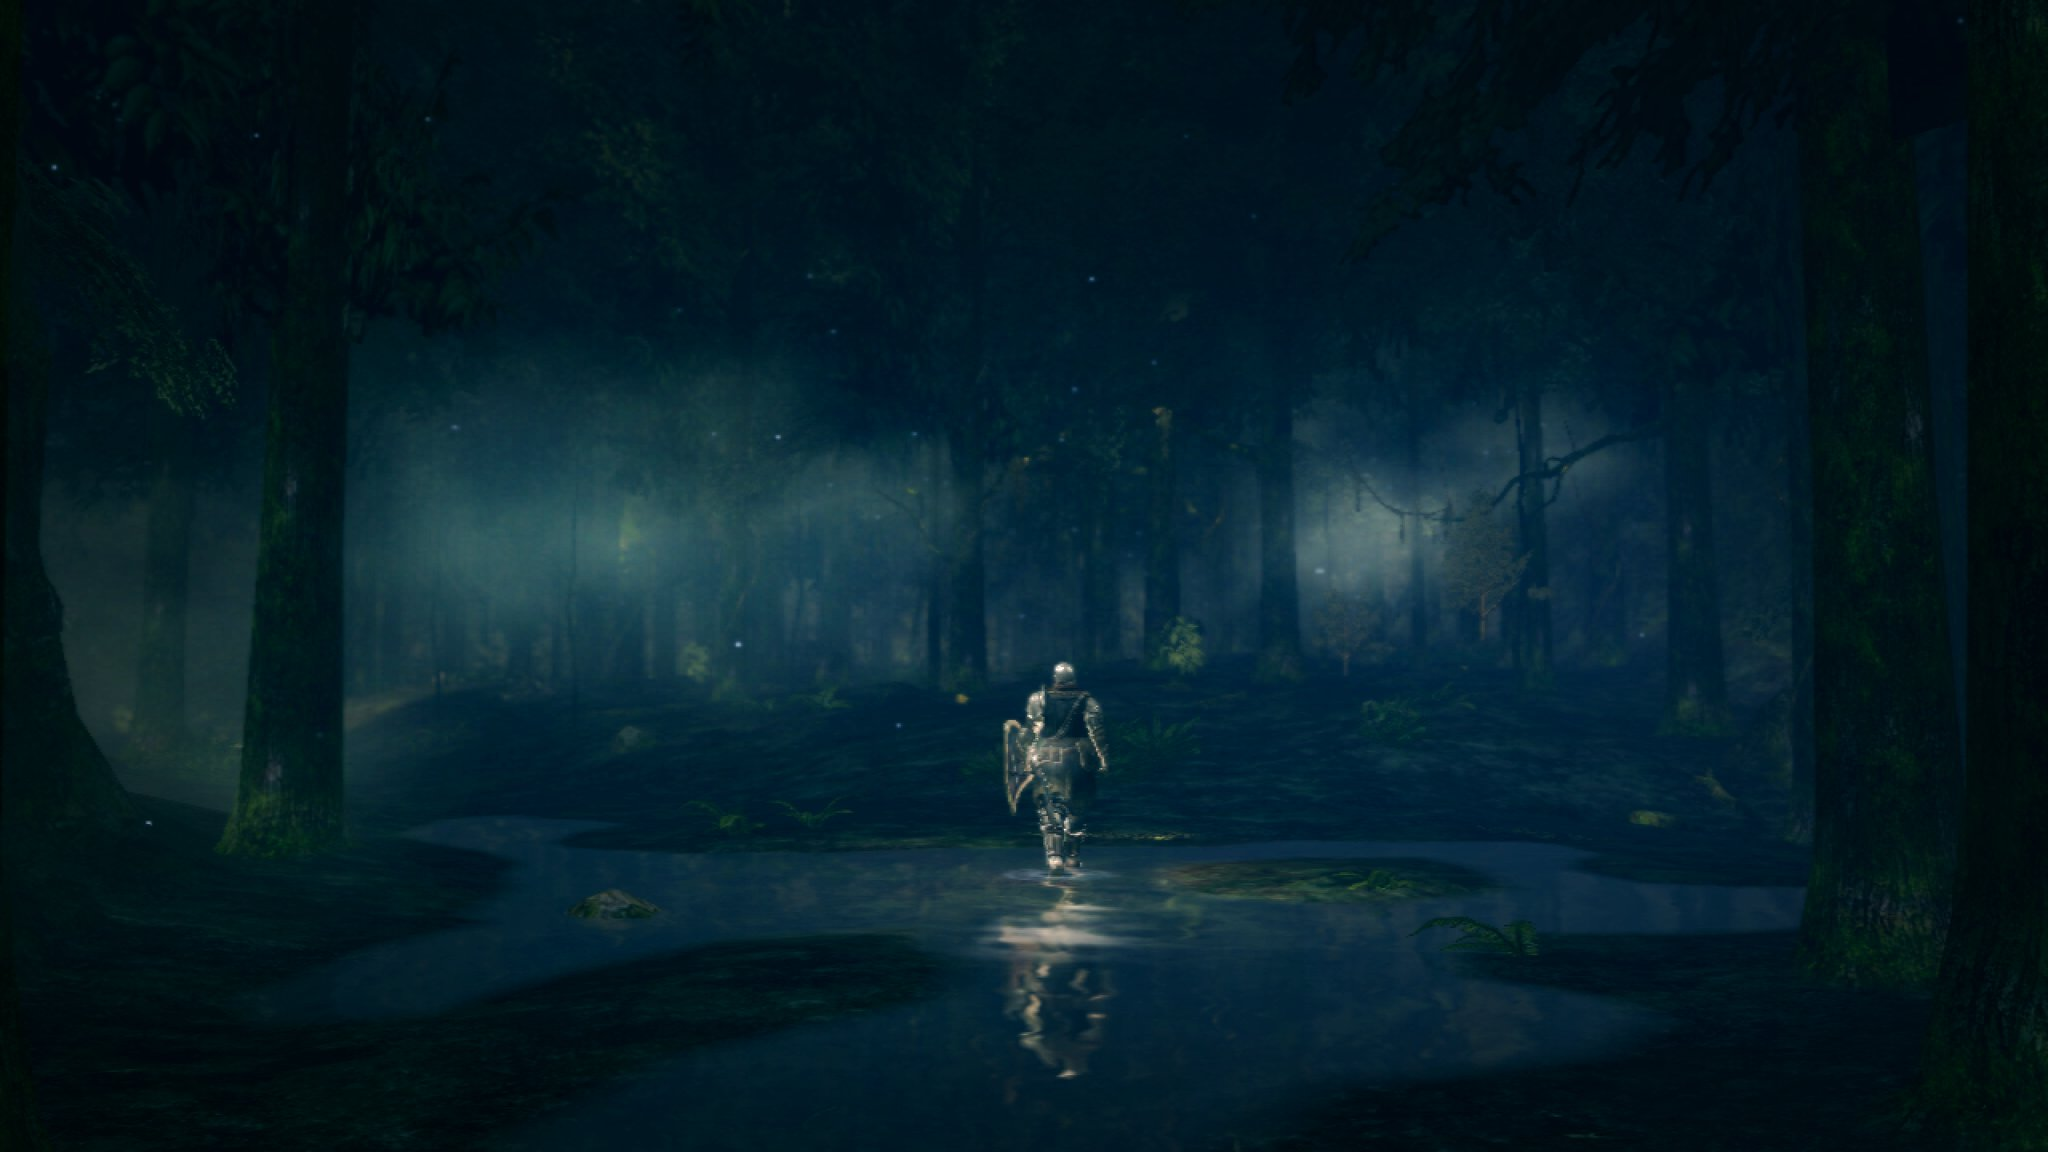 A picture that, for me, encapsulates the lonely awe of Dark Souls.